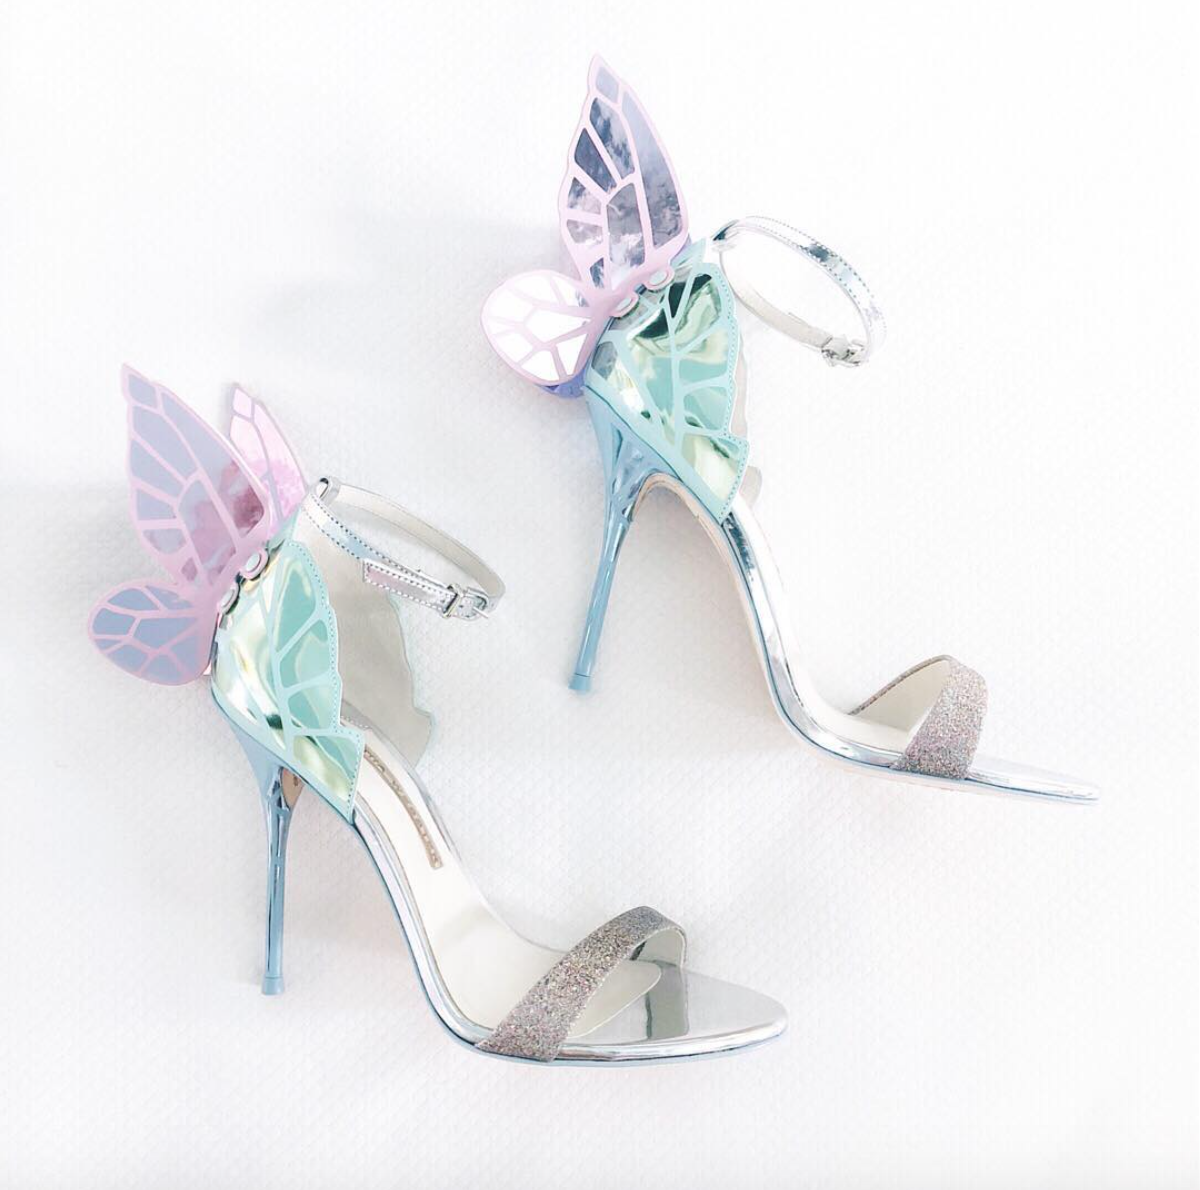 SOPHIA WEBSTER - At first blush, I really only thought I would wear these shoes once or twice. Clearly, they are quite the statement shoe and intricate with detail! But I find myself looking for times to wear these with success! You have probably seen them all over my Instagram page, I've been wearing them so much! Butterfly heels? What's NOT to love?!